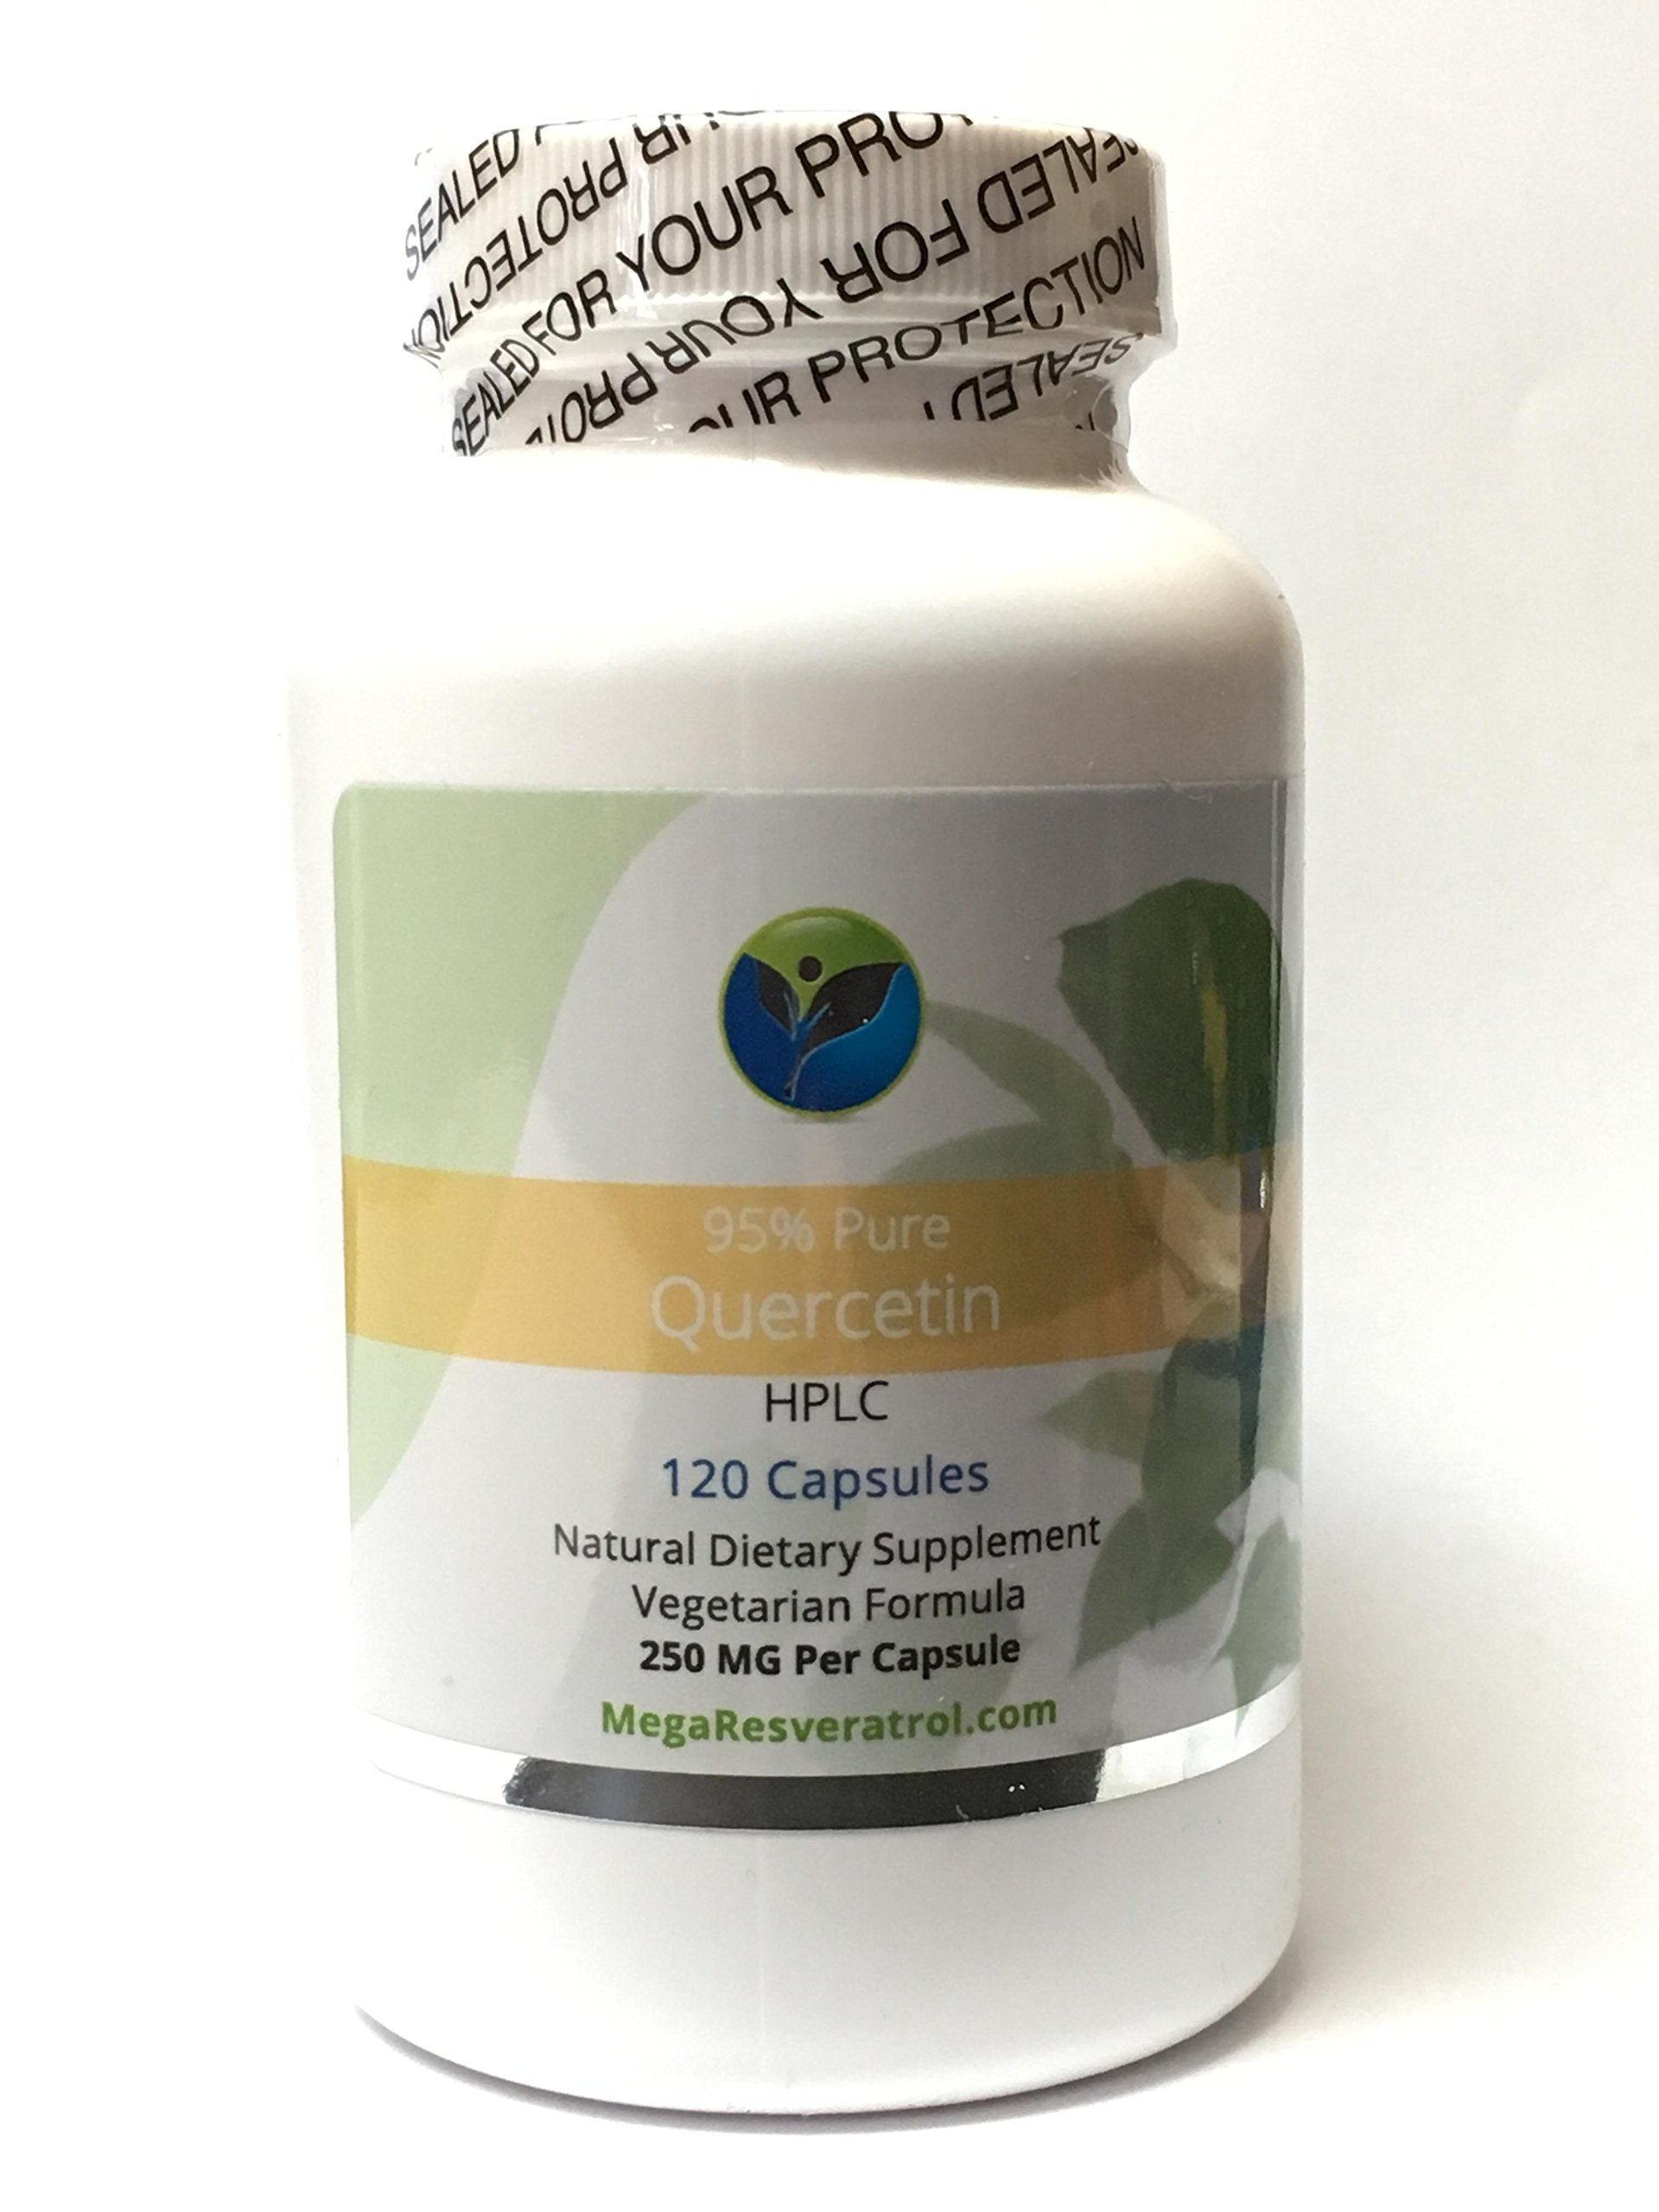 Quercetin 95% Pure, 250 Mg Vegetarian Capsules. NO Excipients Added (AKA ''Inactive Ingredients'').